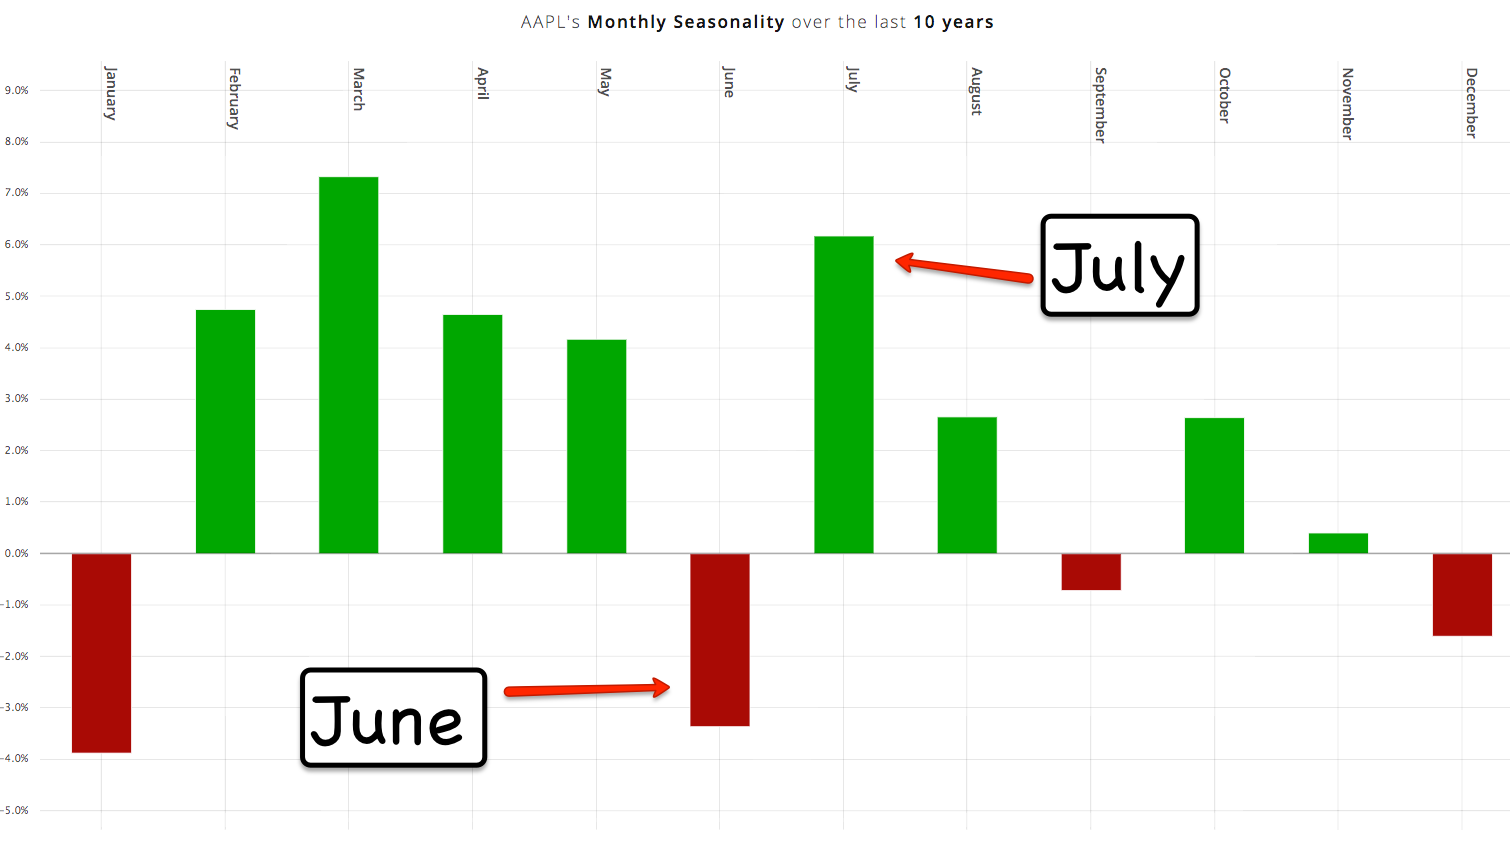 How is the Best MACD + Seasonality working for AAPL?